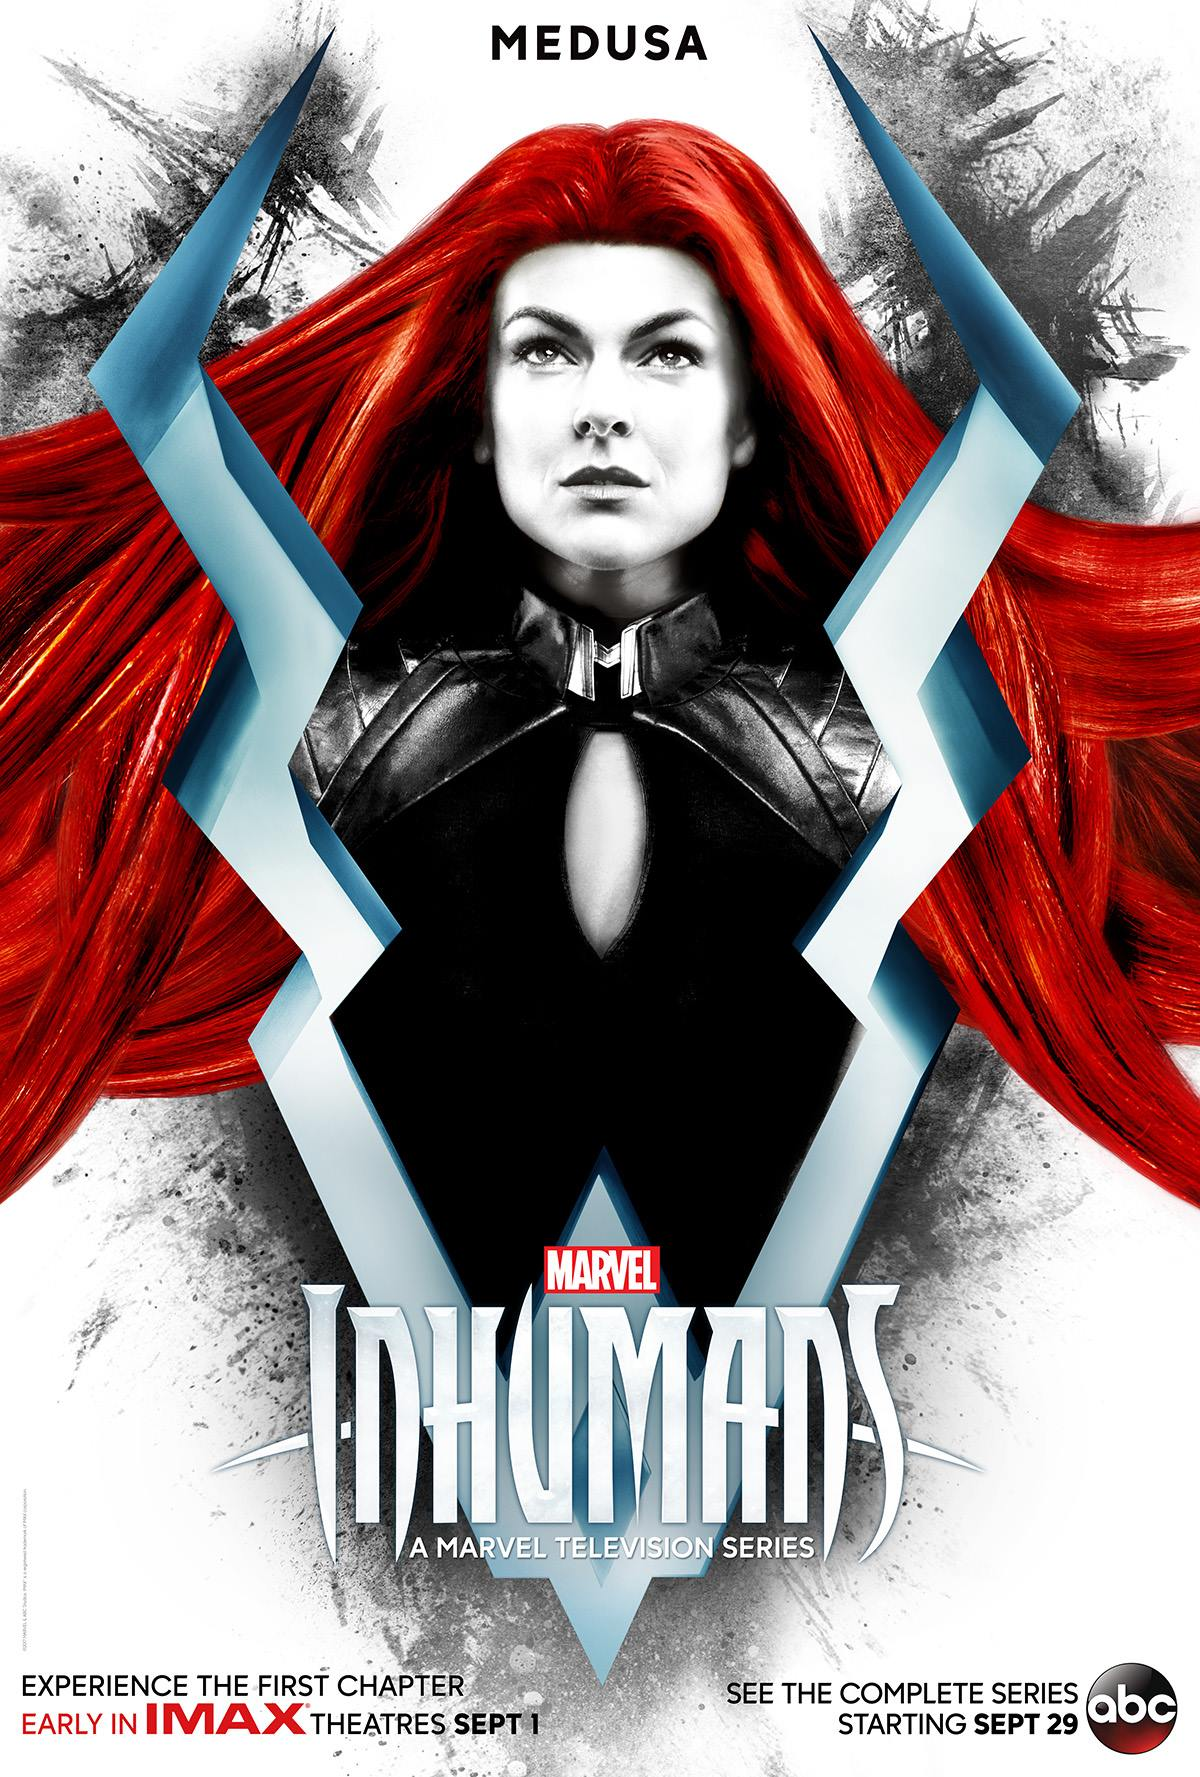 Marvel S Jessica Jones Janet Mcteer White Queen Joins: First Character Posters Of Marvel's Inhumans